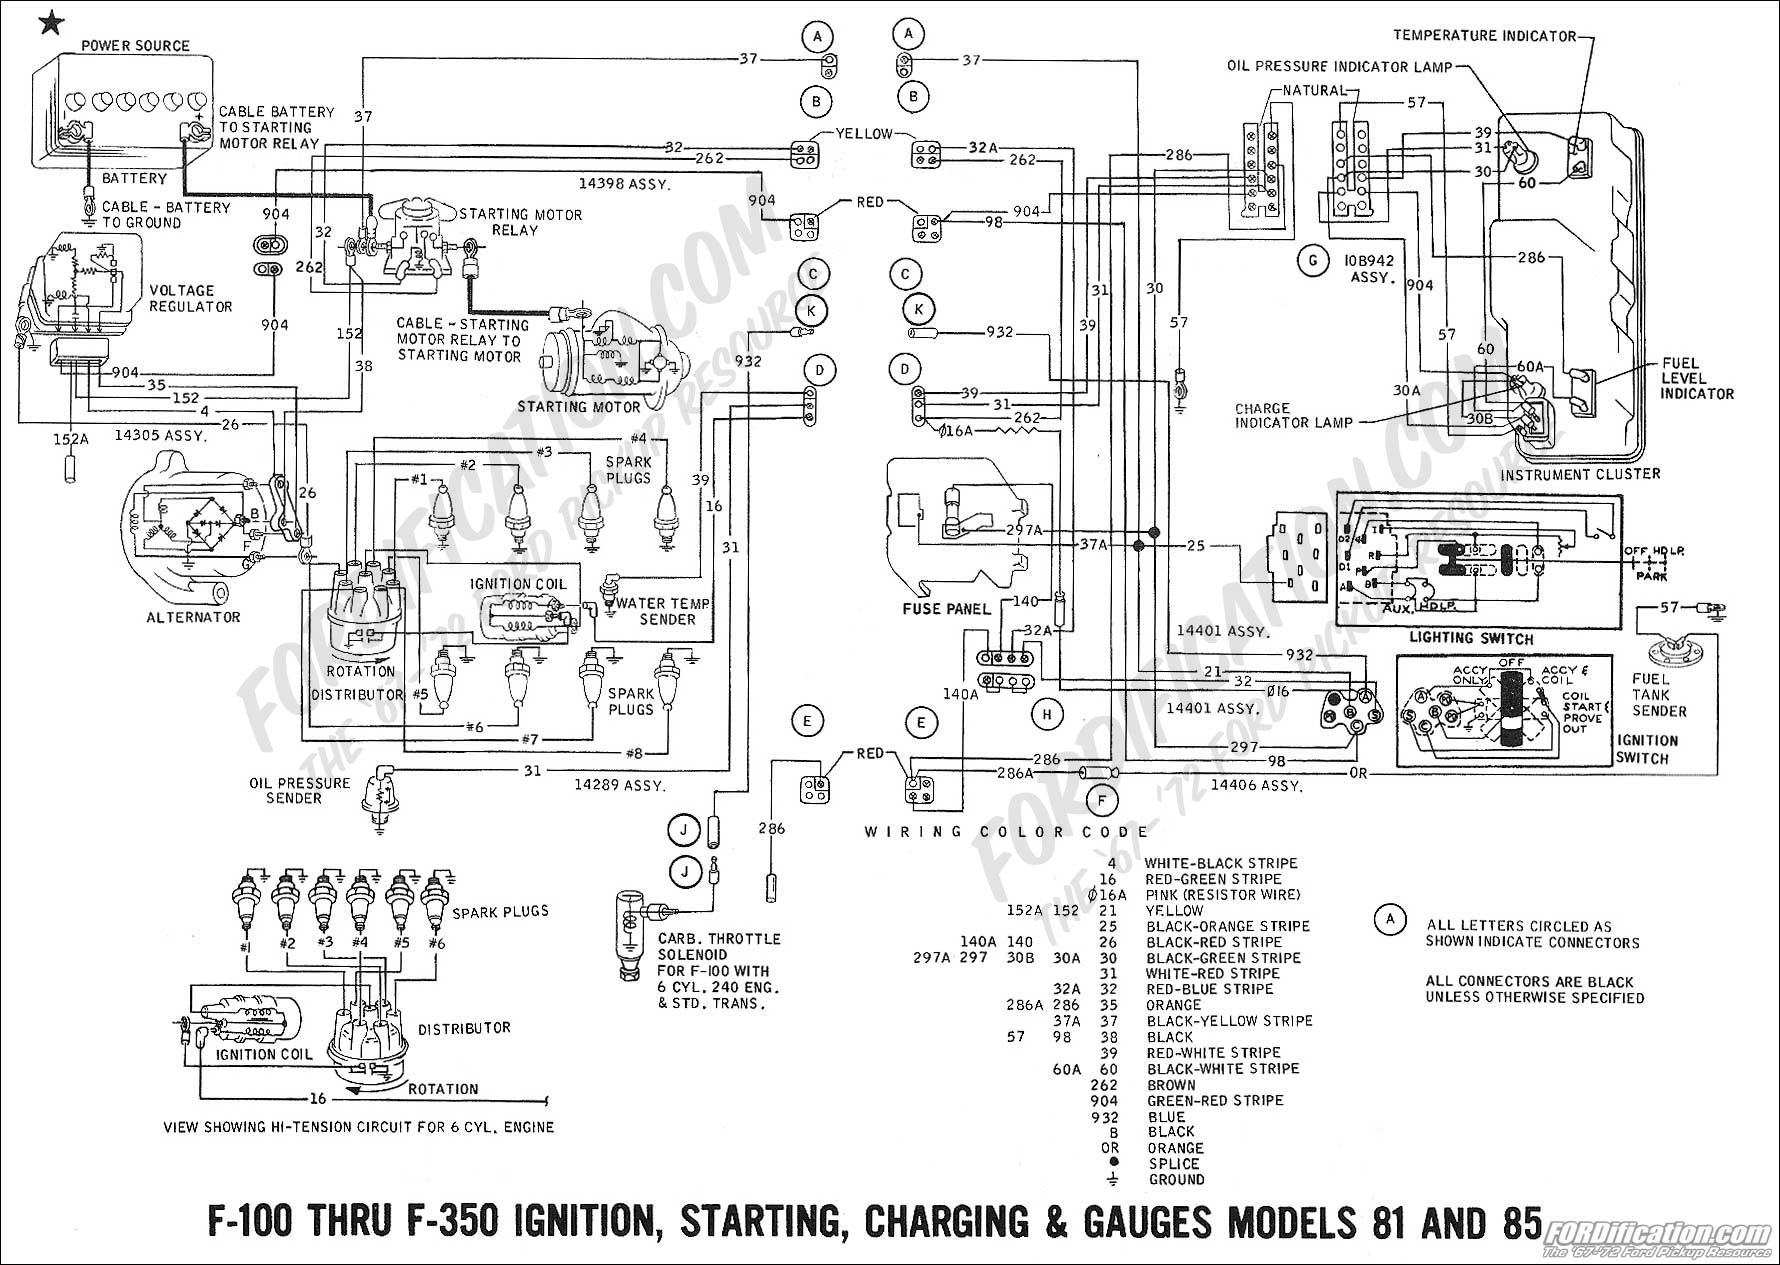 hight resolution of 1988 ford f100 wiring wiring diagram 1968 ford f100 wiring harness speedway 1968 f100 wiring diagram